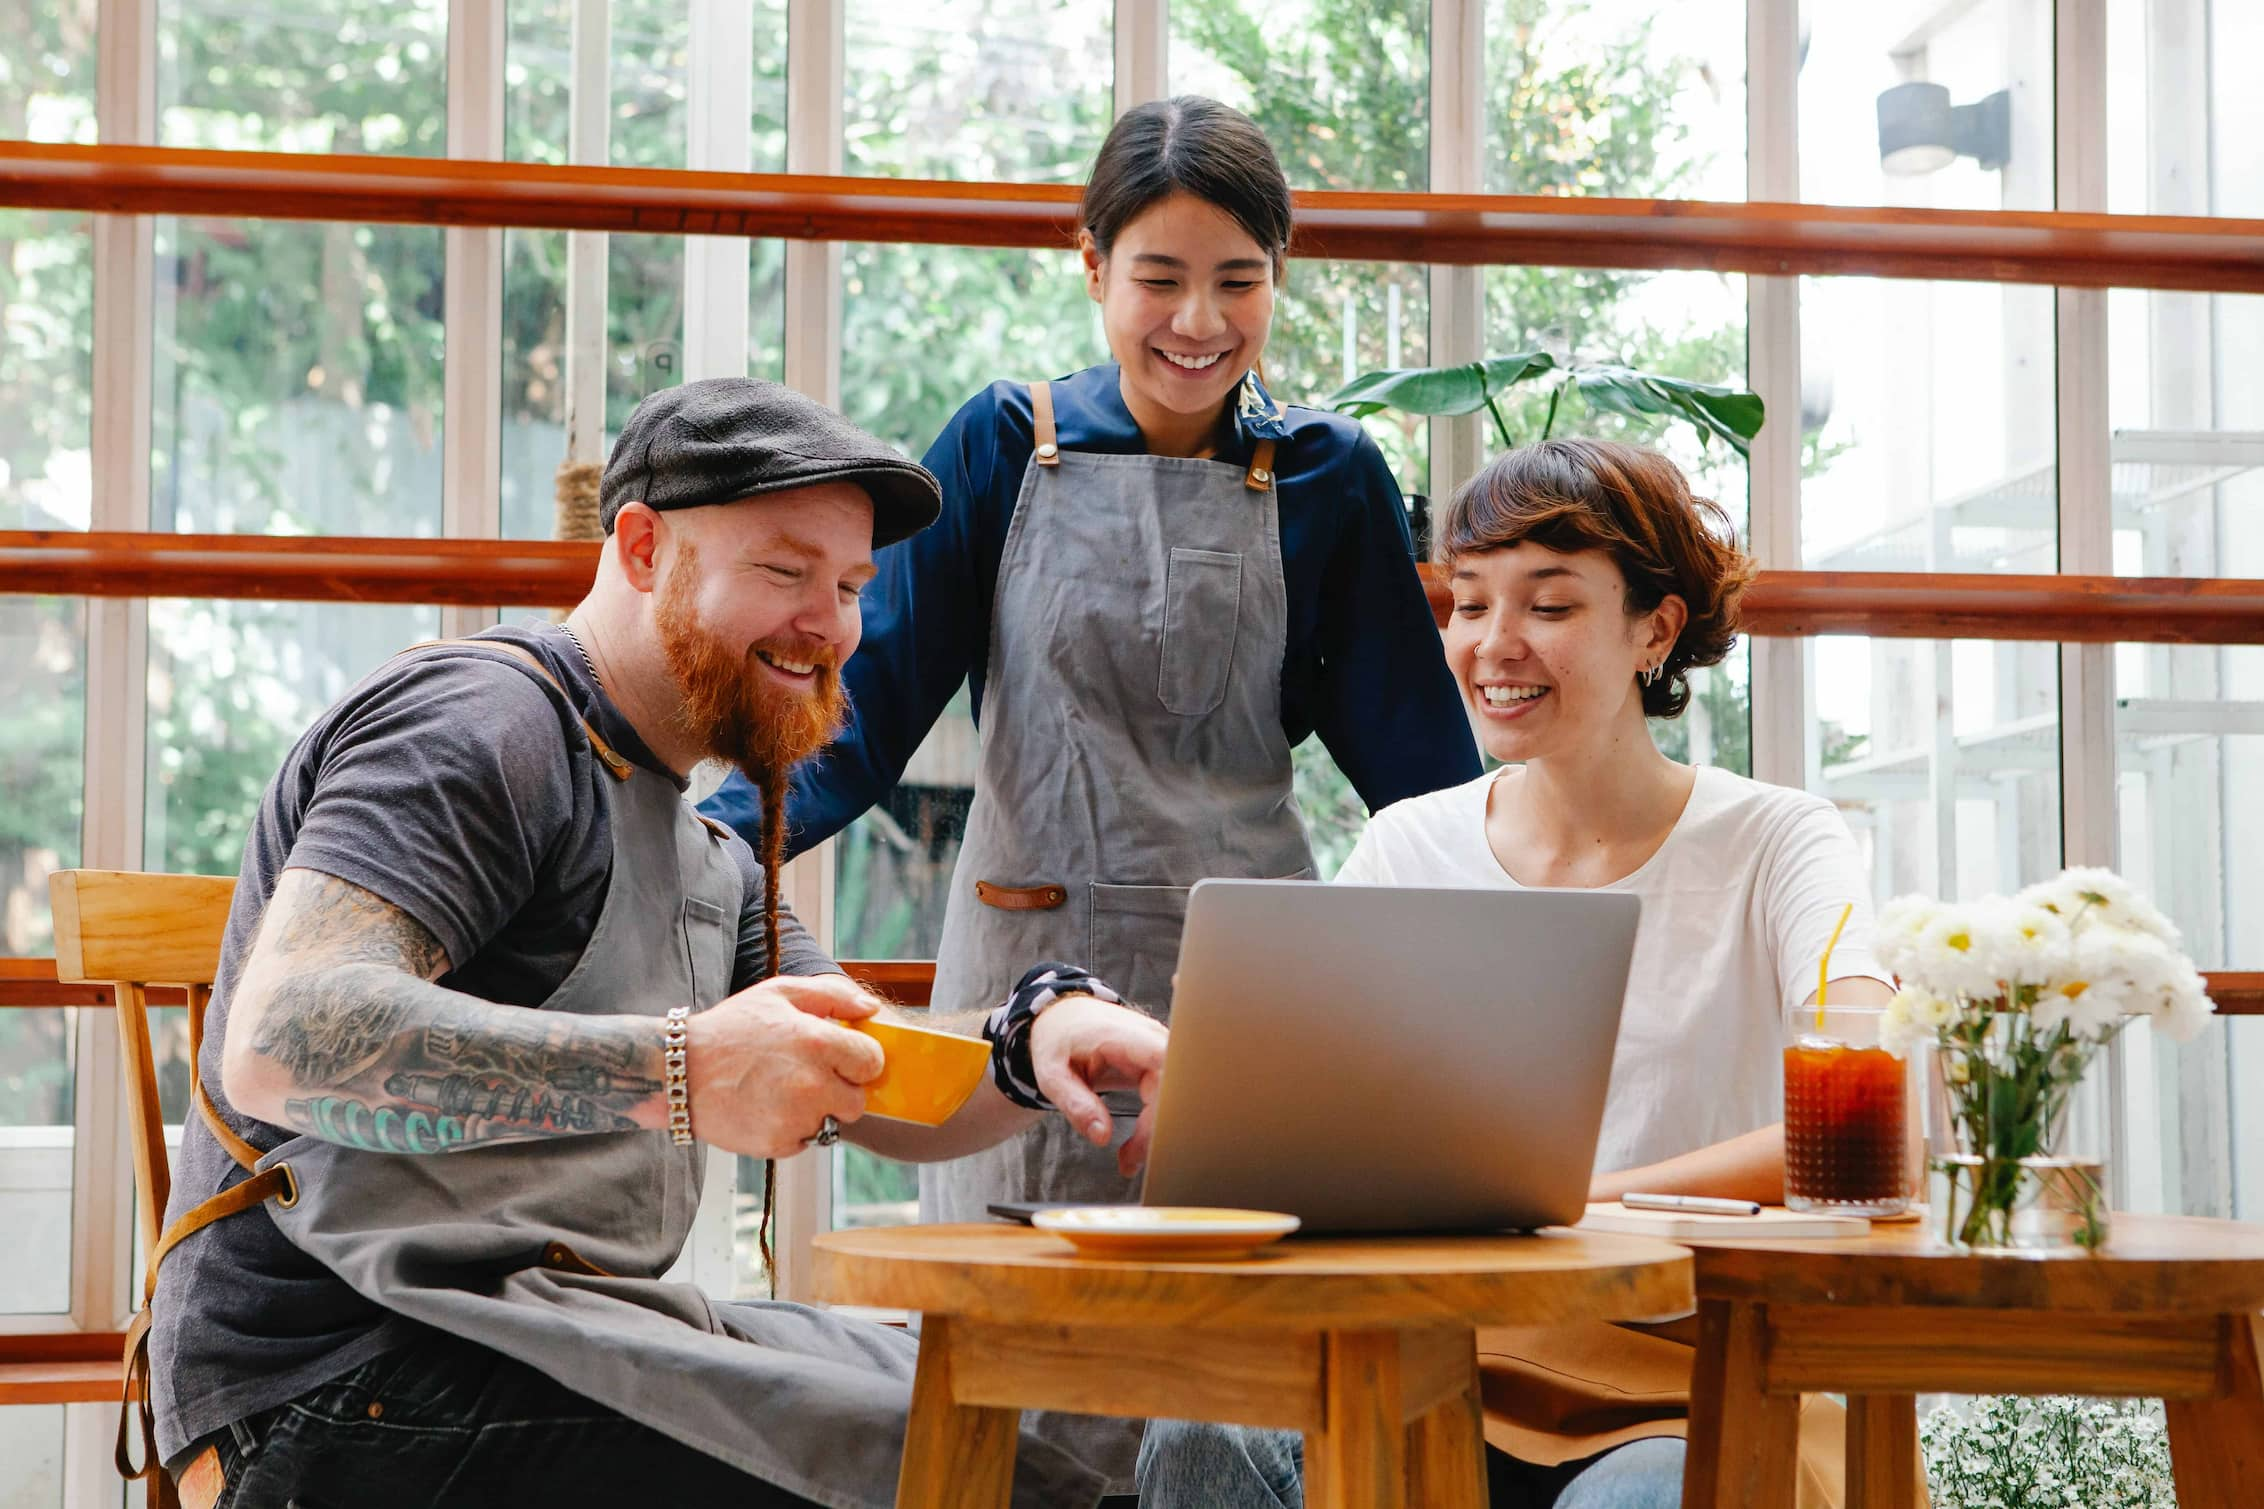 Small business owners gathered around laptop